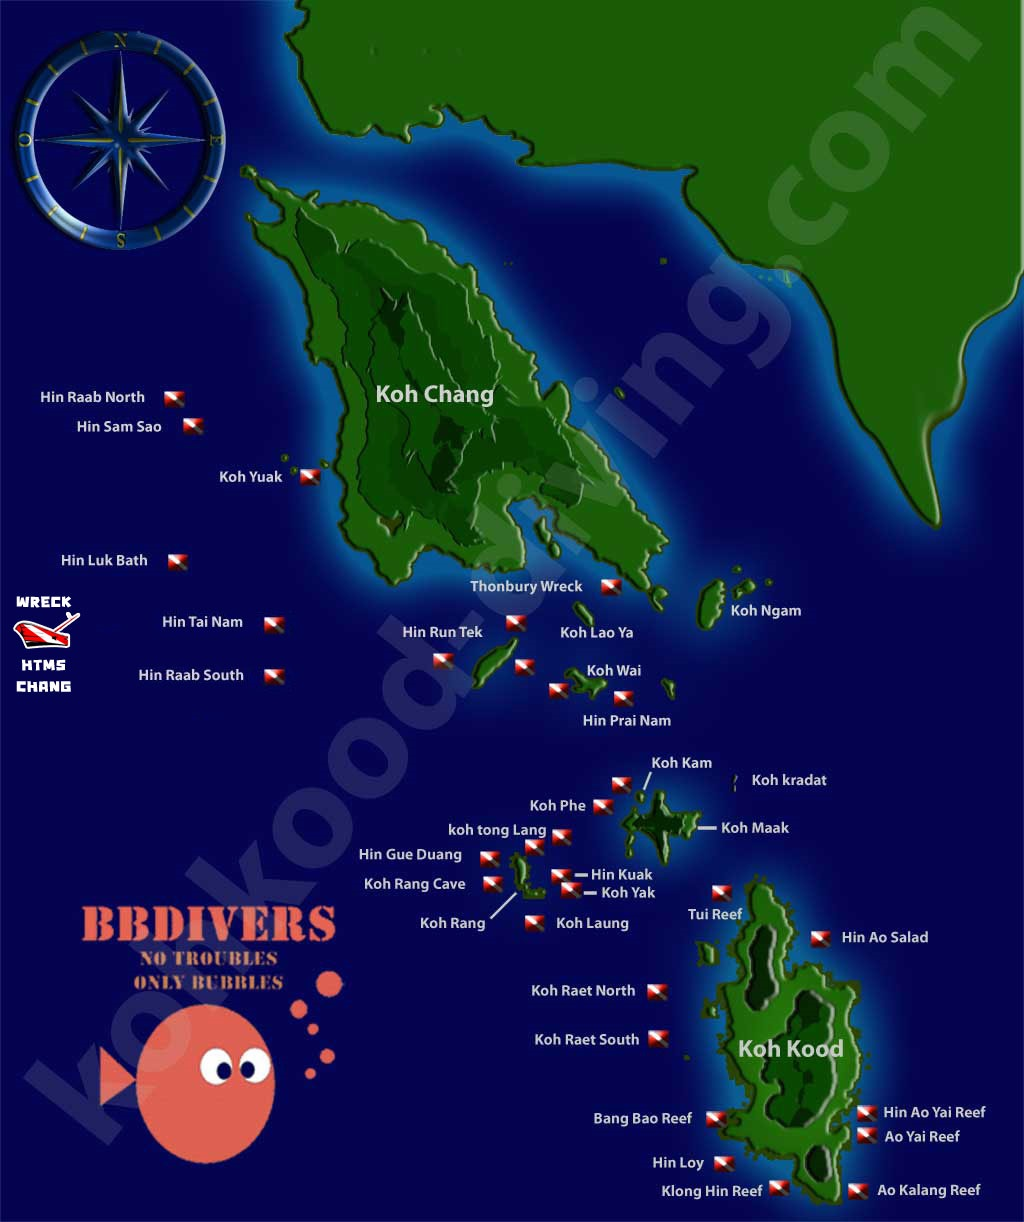 BB Divers Koh Chang Dive sites